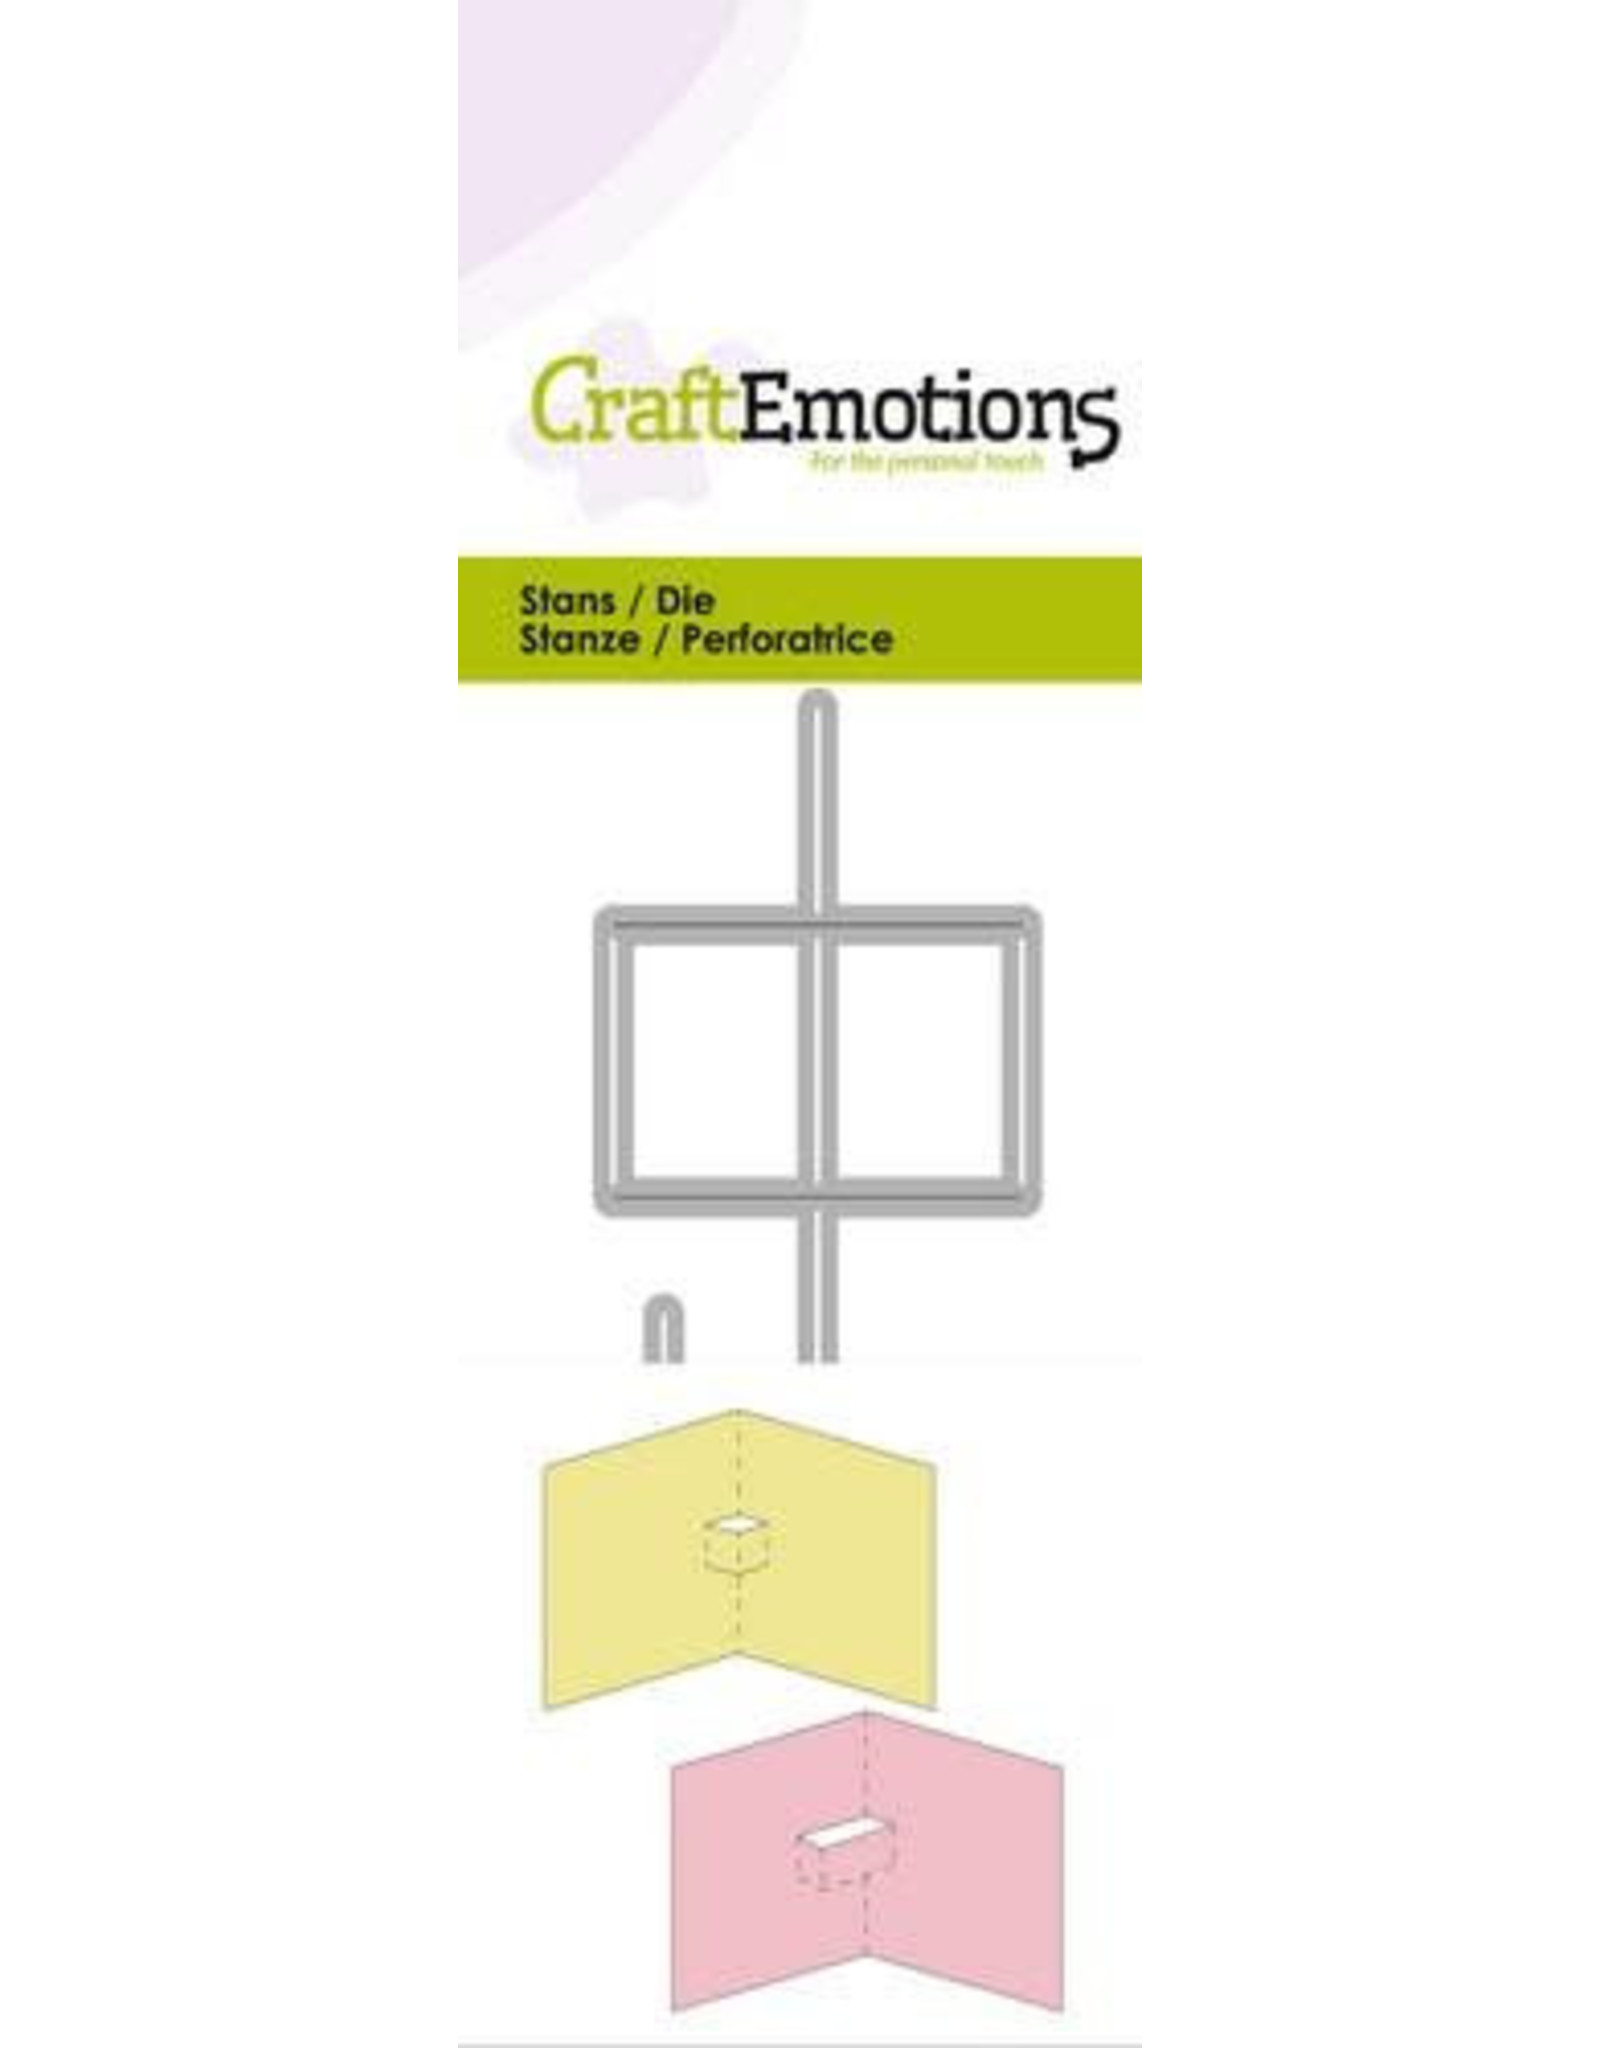 Craft Emotions CraftEmotions Die - 2x pop-up basis Card 5x10cm